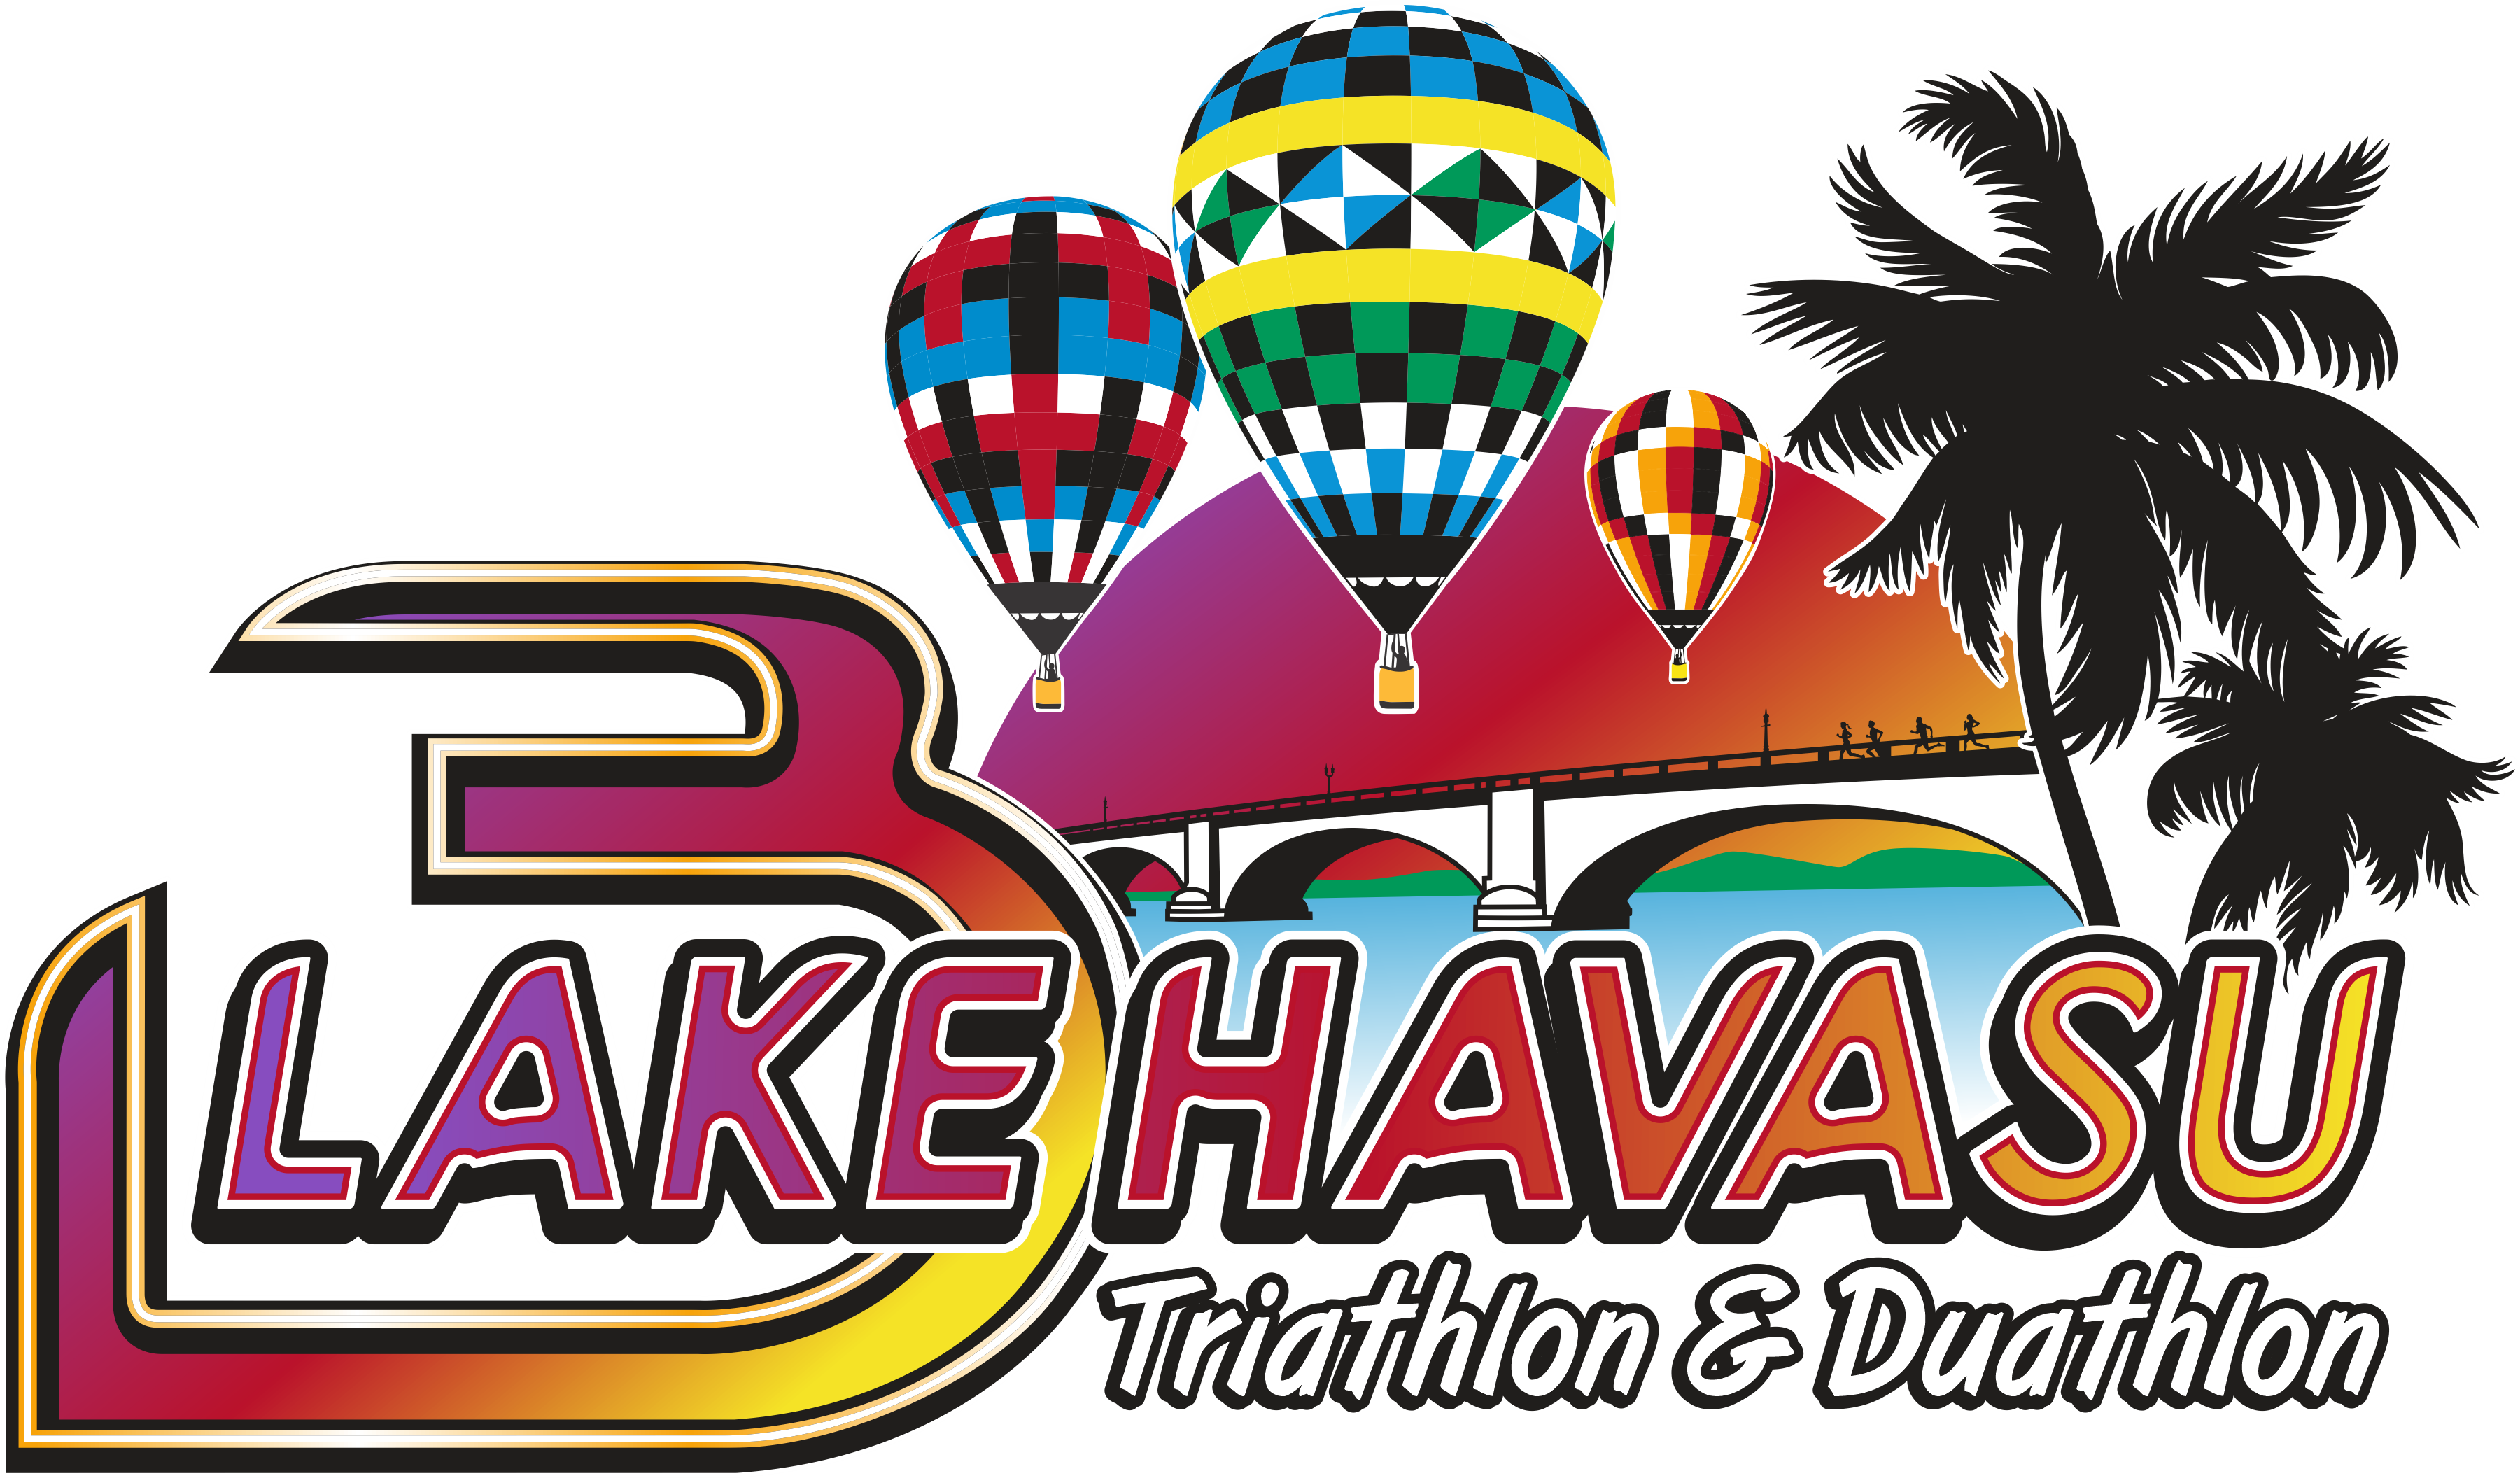 3-Disciplines-Lake-Havasu-Triathlon Lake Havasu Triathlon and Duathlon